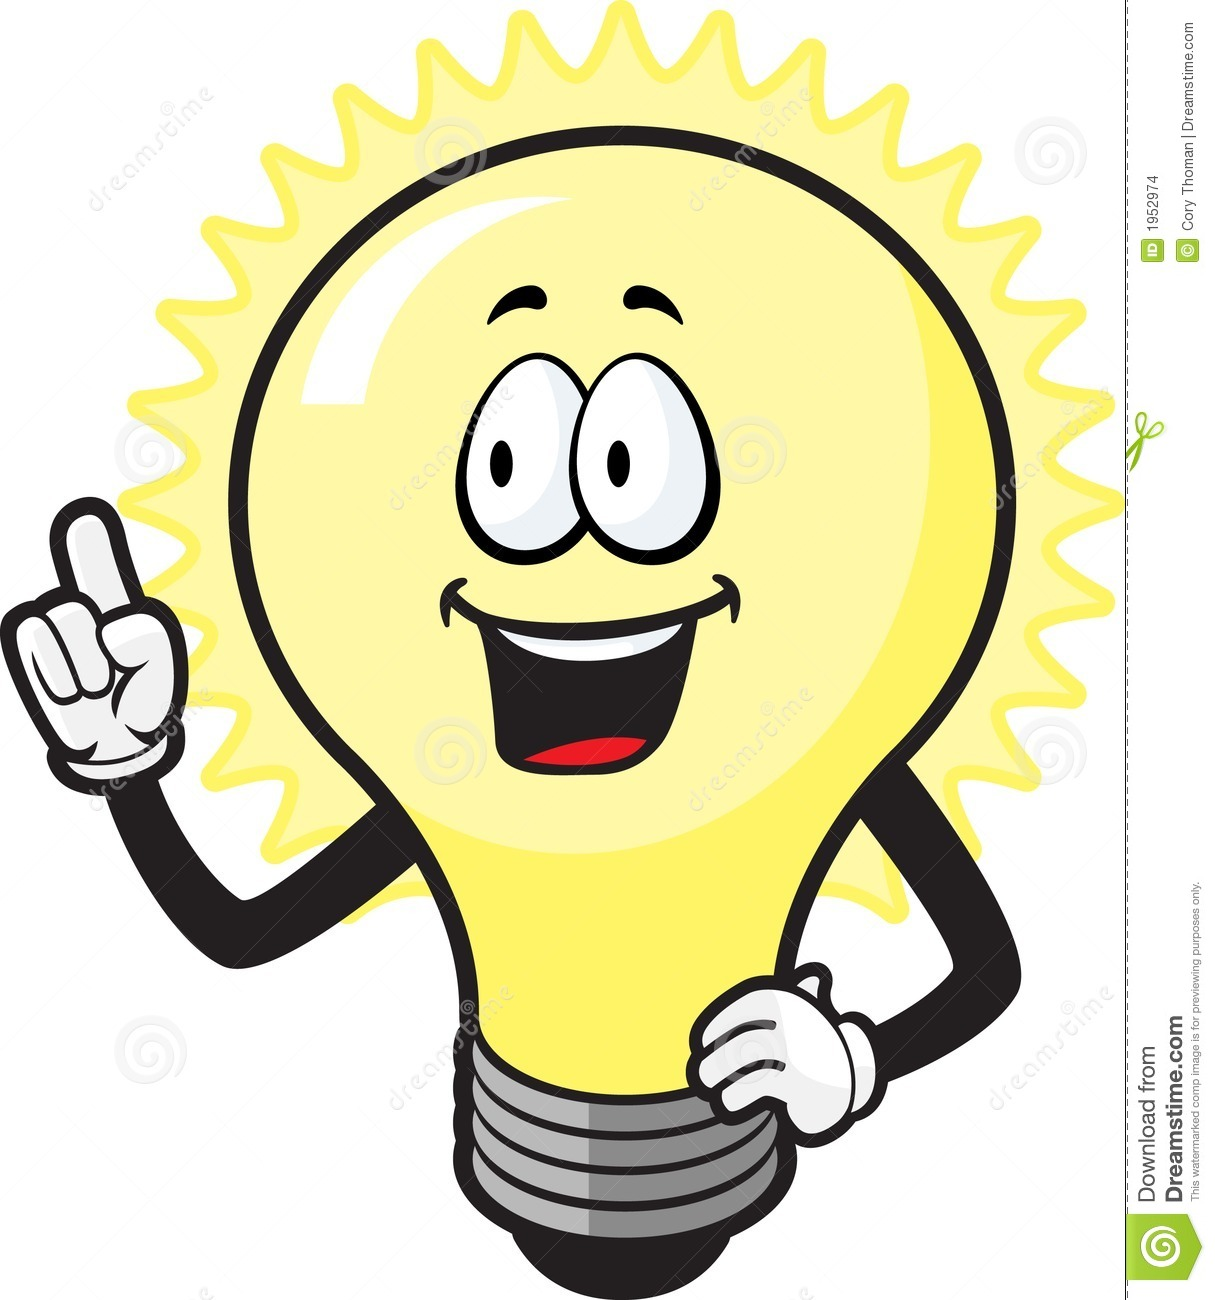 svg transparent download Collection of light free. Bulb clipart person.